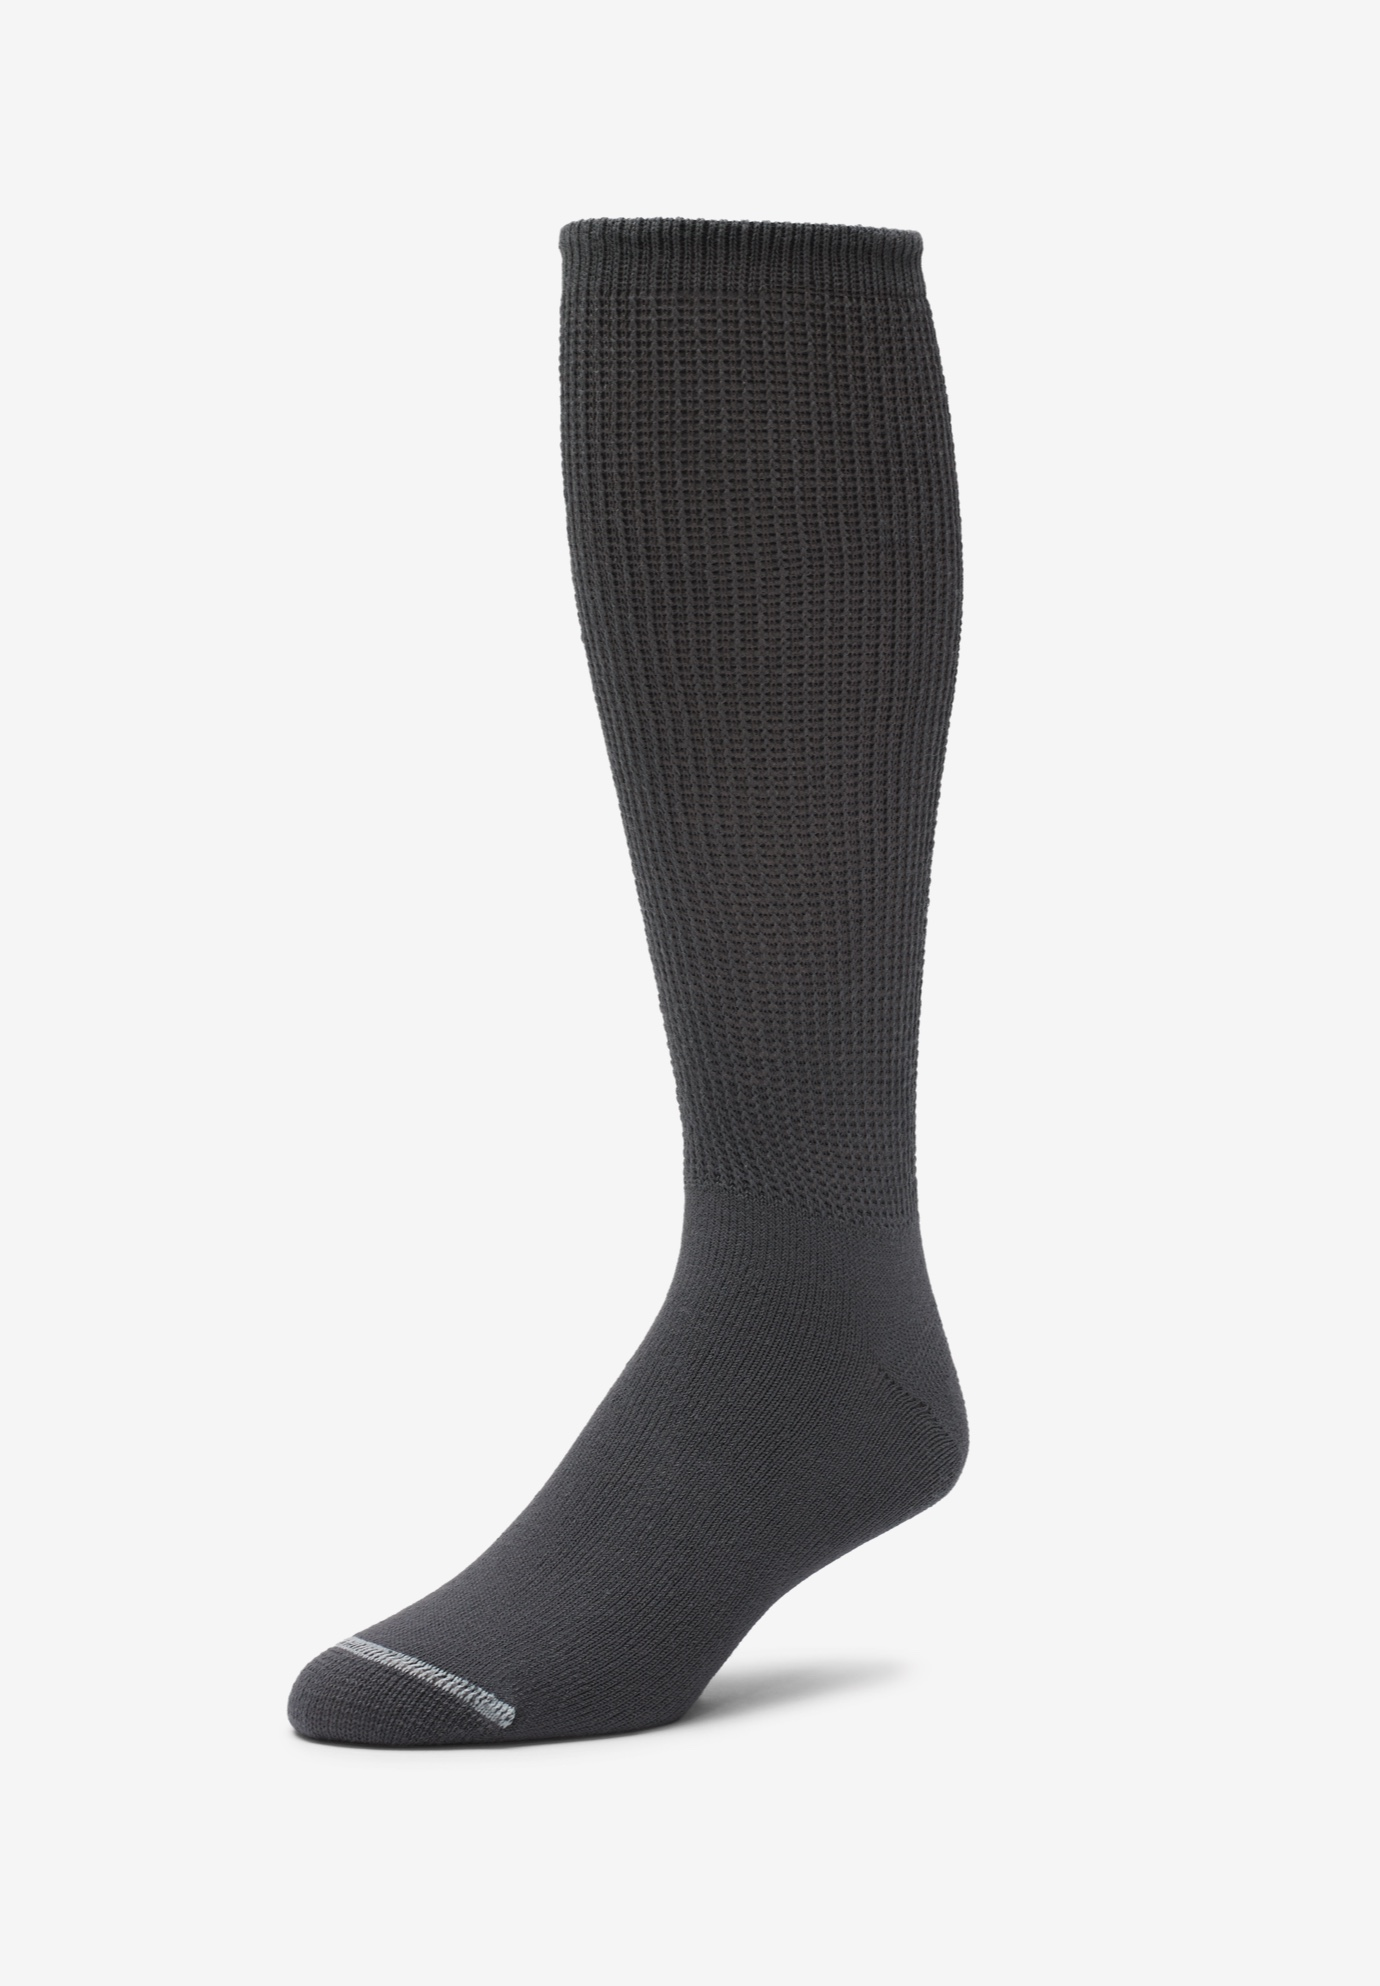 Diabetic Crew Socks with Extra Deep Footbed,